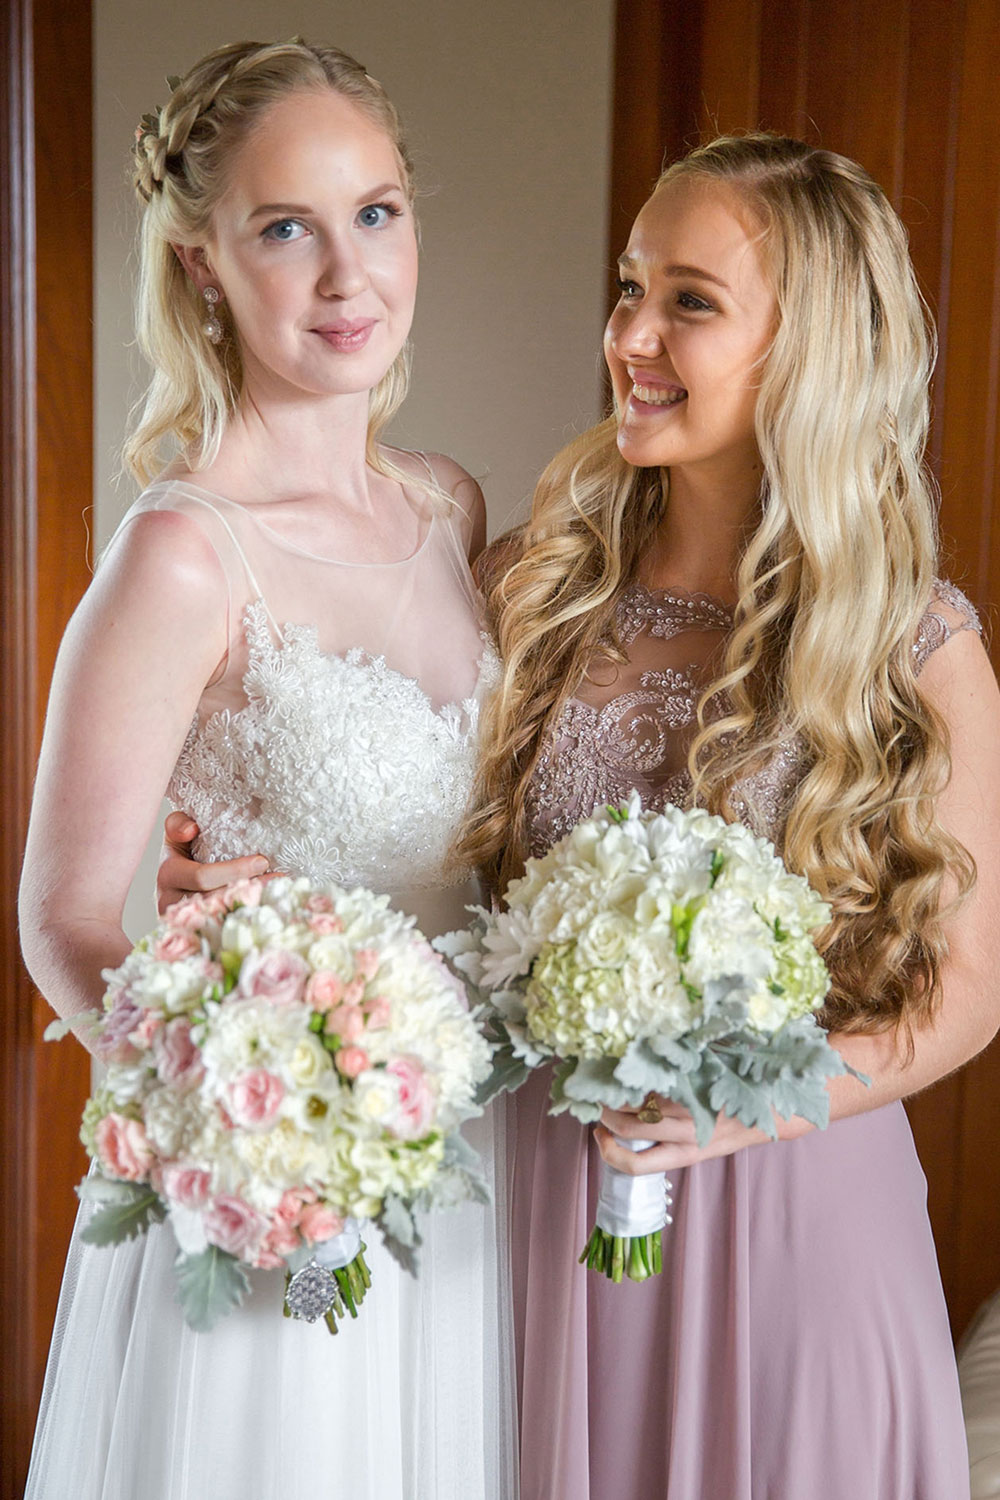 Jess and her gorgeous bridesmaid